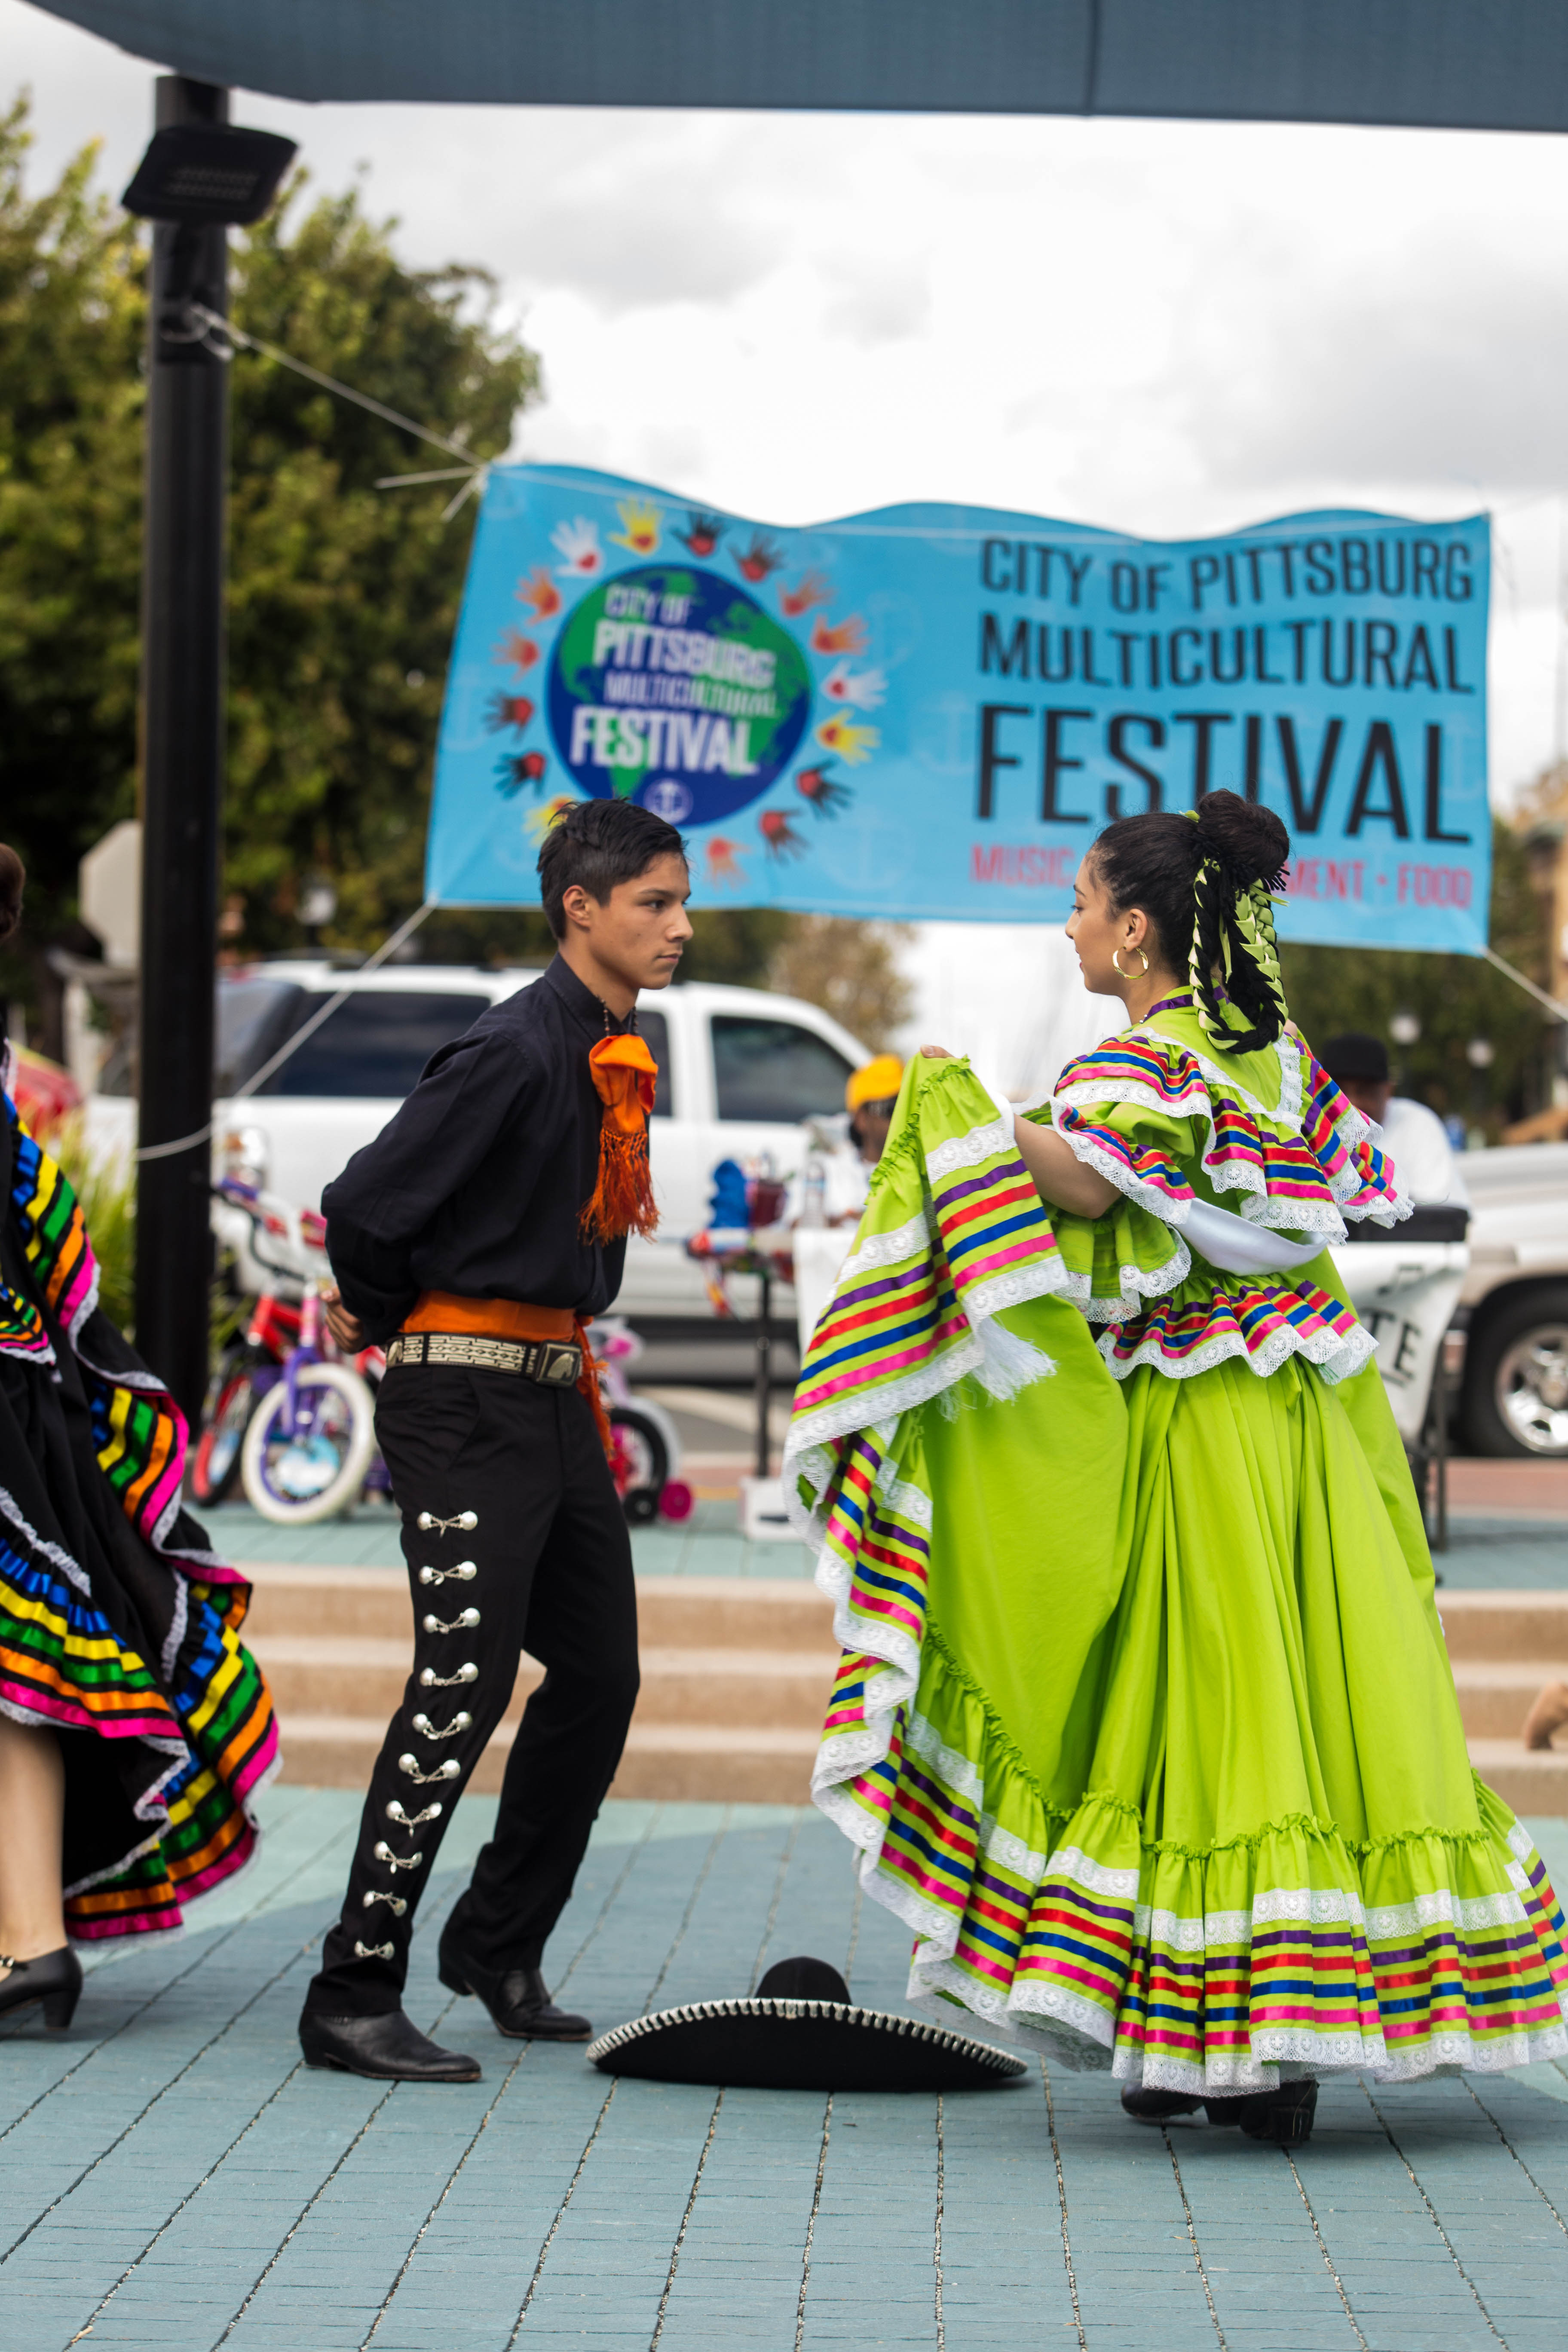 CITY_PITTSBURG_MULTICULTURAL_OCTOBER_2016 (640)